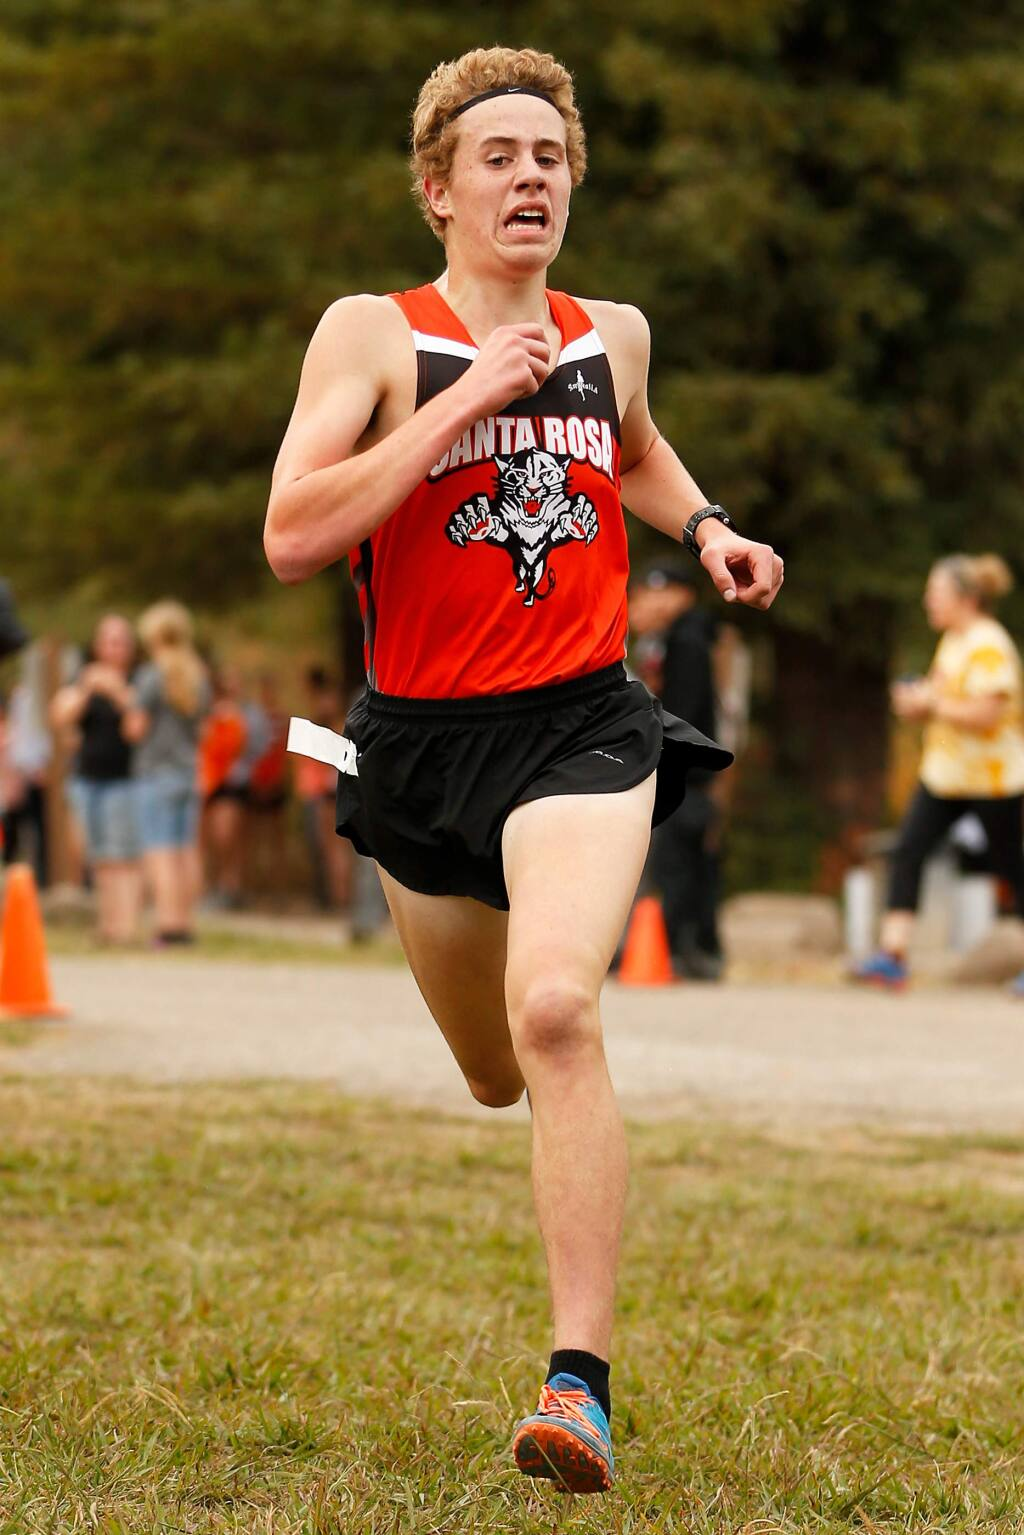 Santa Rosa's Andrew McKamey wins first place with a time of 15:32.6 during a North Bay League-Oak Division cross country meet, at Spring Lake Park in Santa Rosa, California, on Wednesday, October 16, 2019. (Alvin Jornada / The Press Democrat)